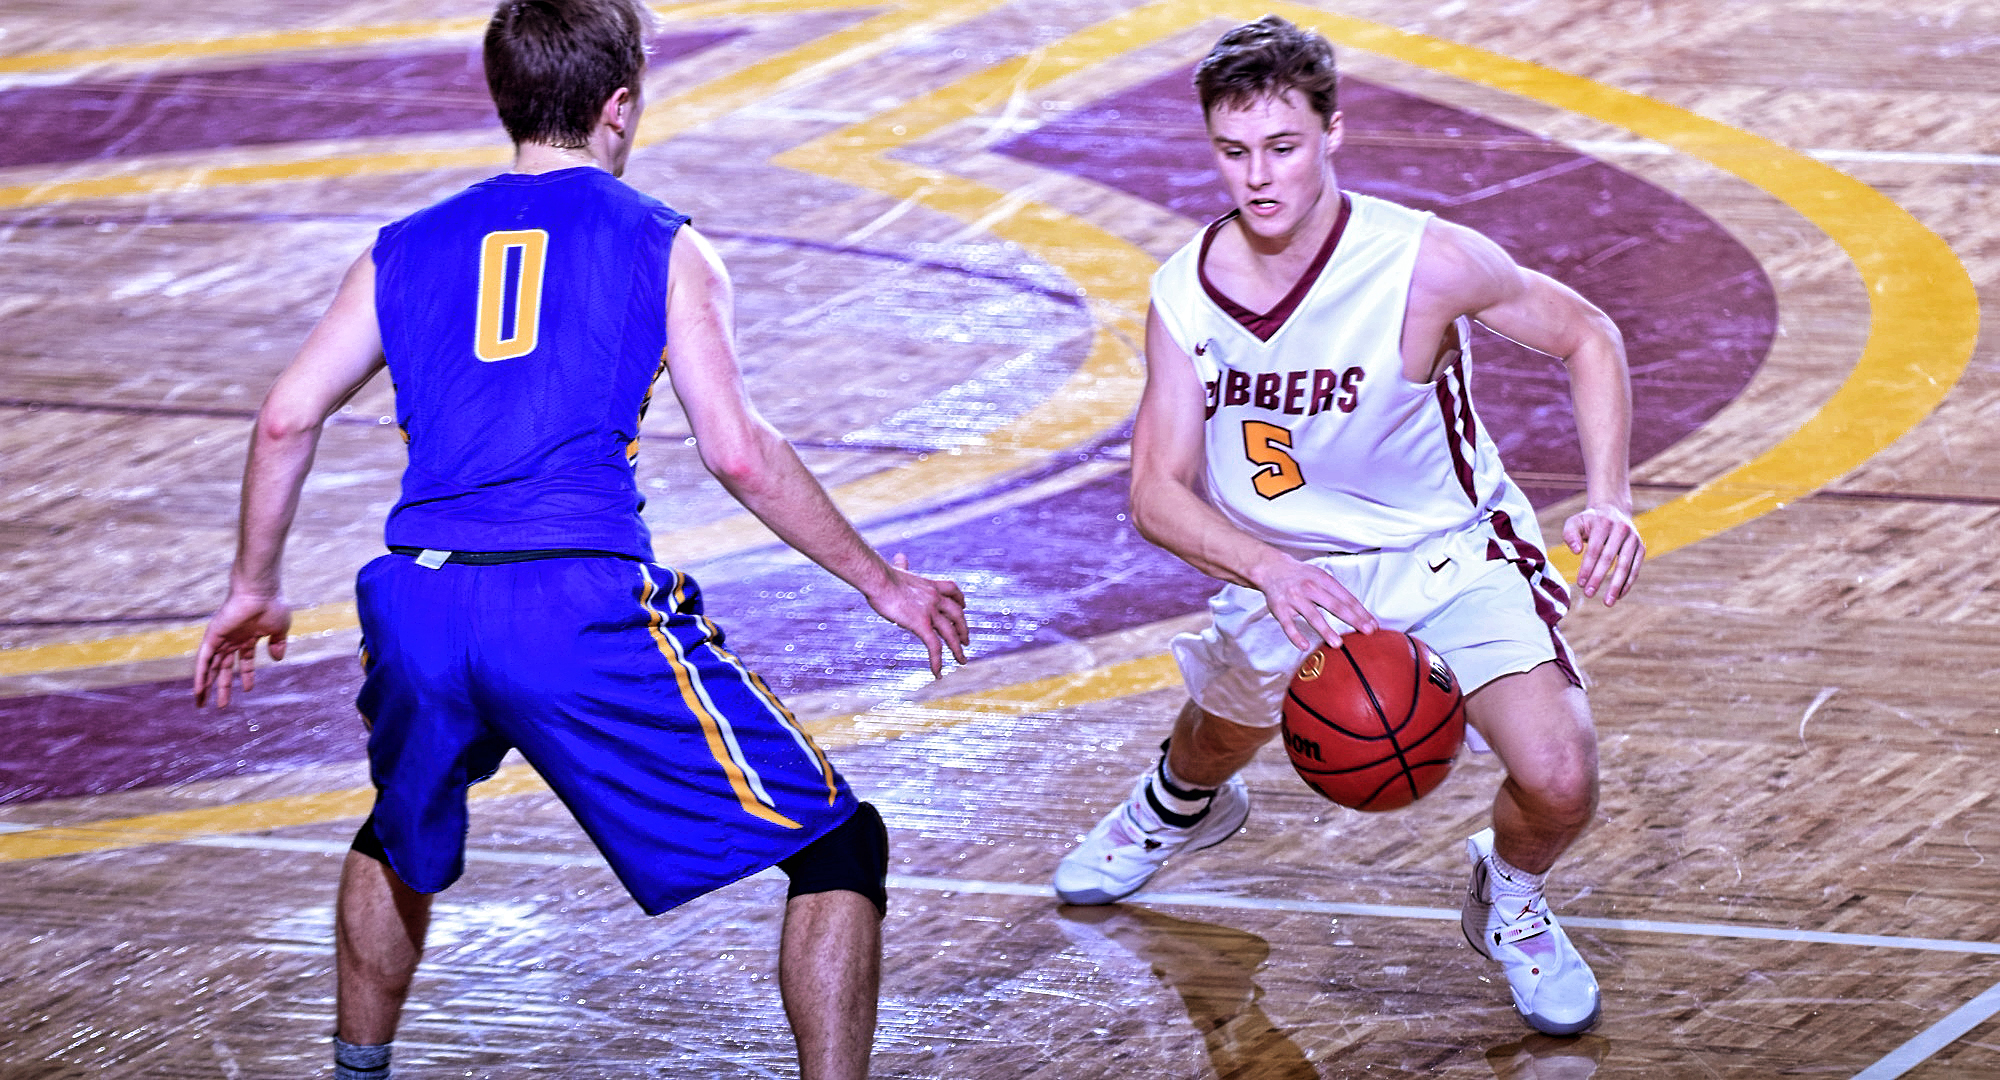 Freshman Jackson Jangula beats a defender off the dribble on his way to the basket and two of his career-high 26 points in the Cobbers' win over St. Scholastica.